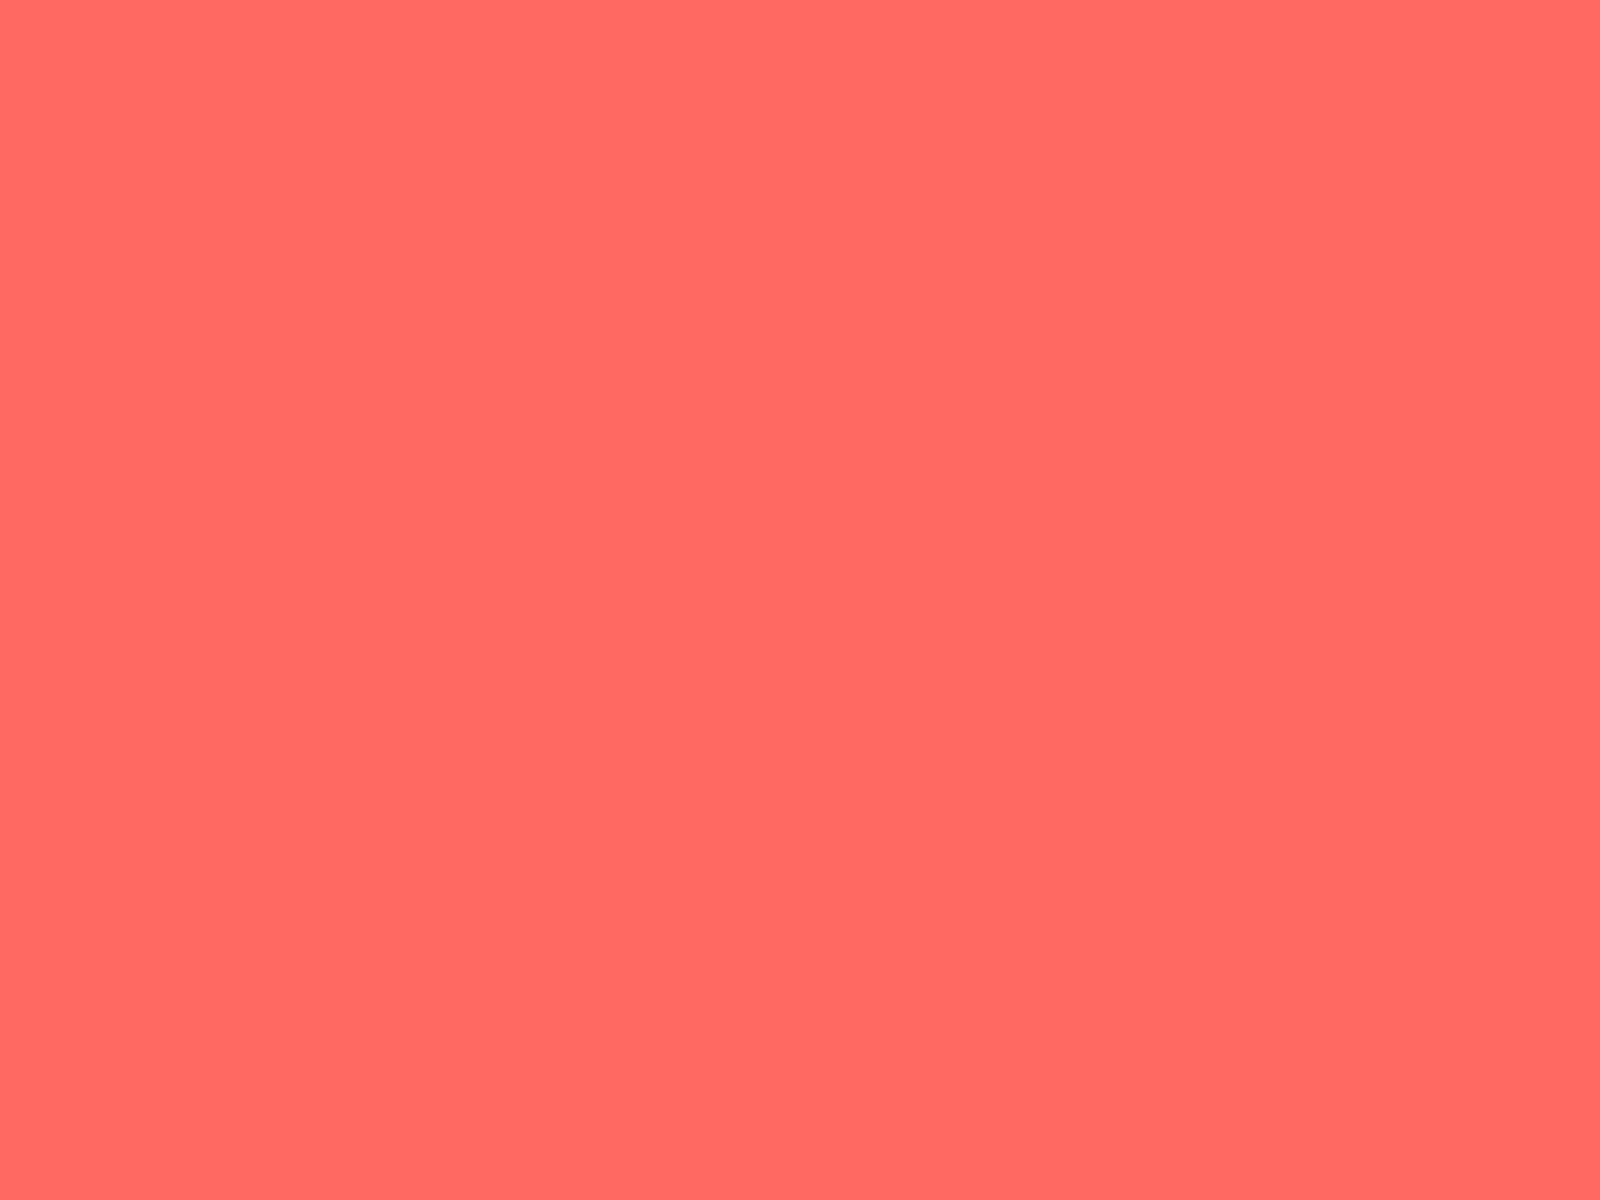 1600x1200 Pastel Red Solid Color Background